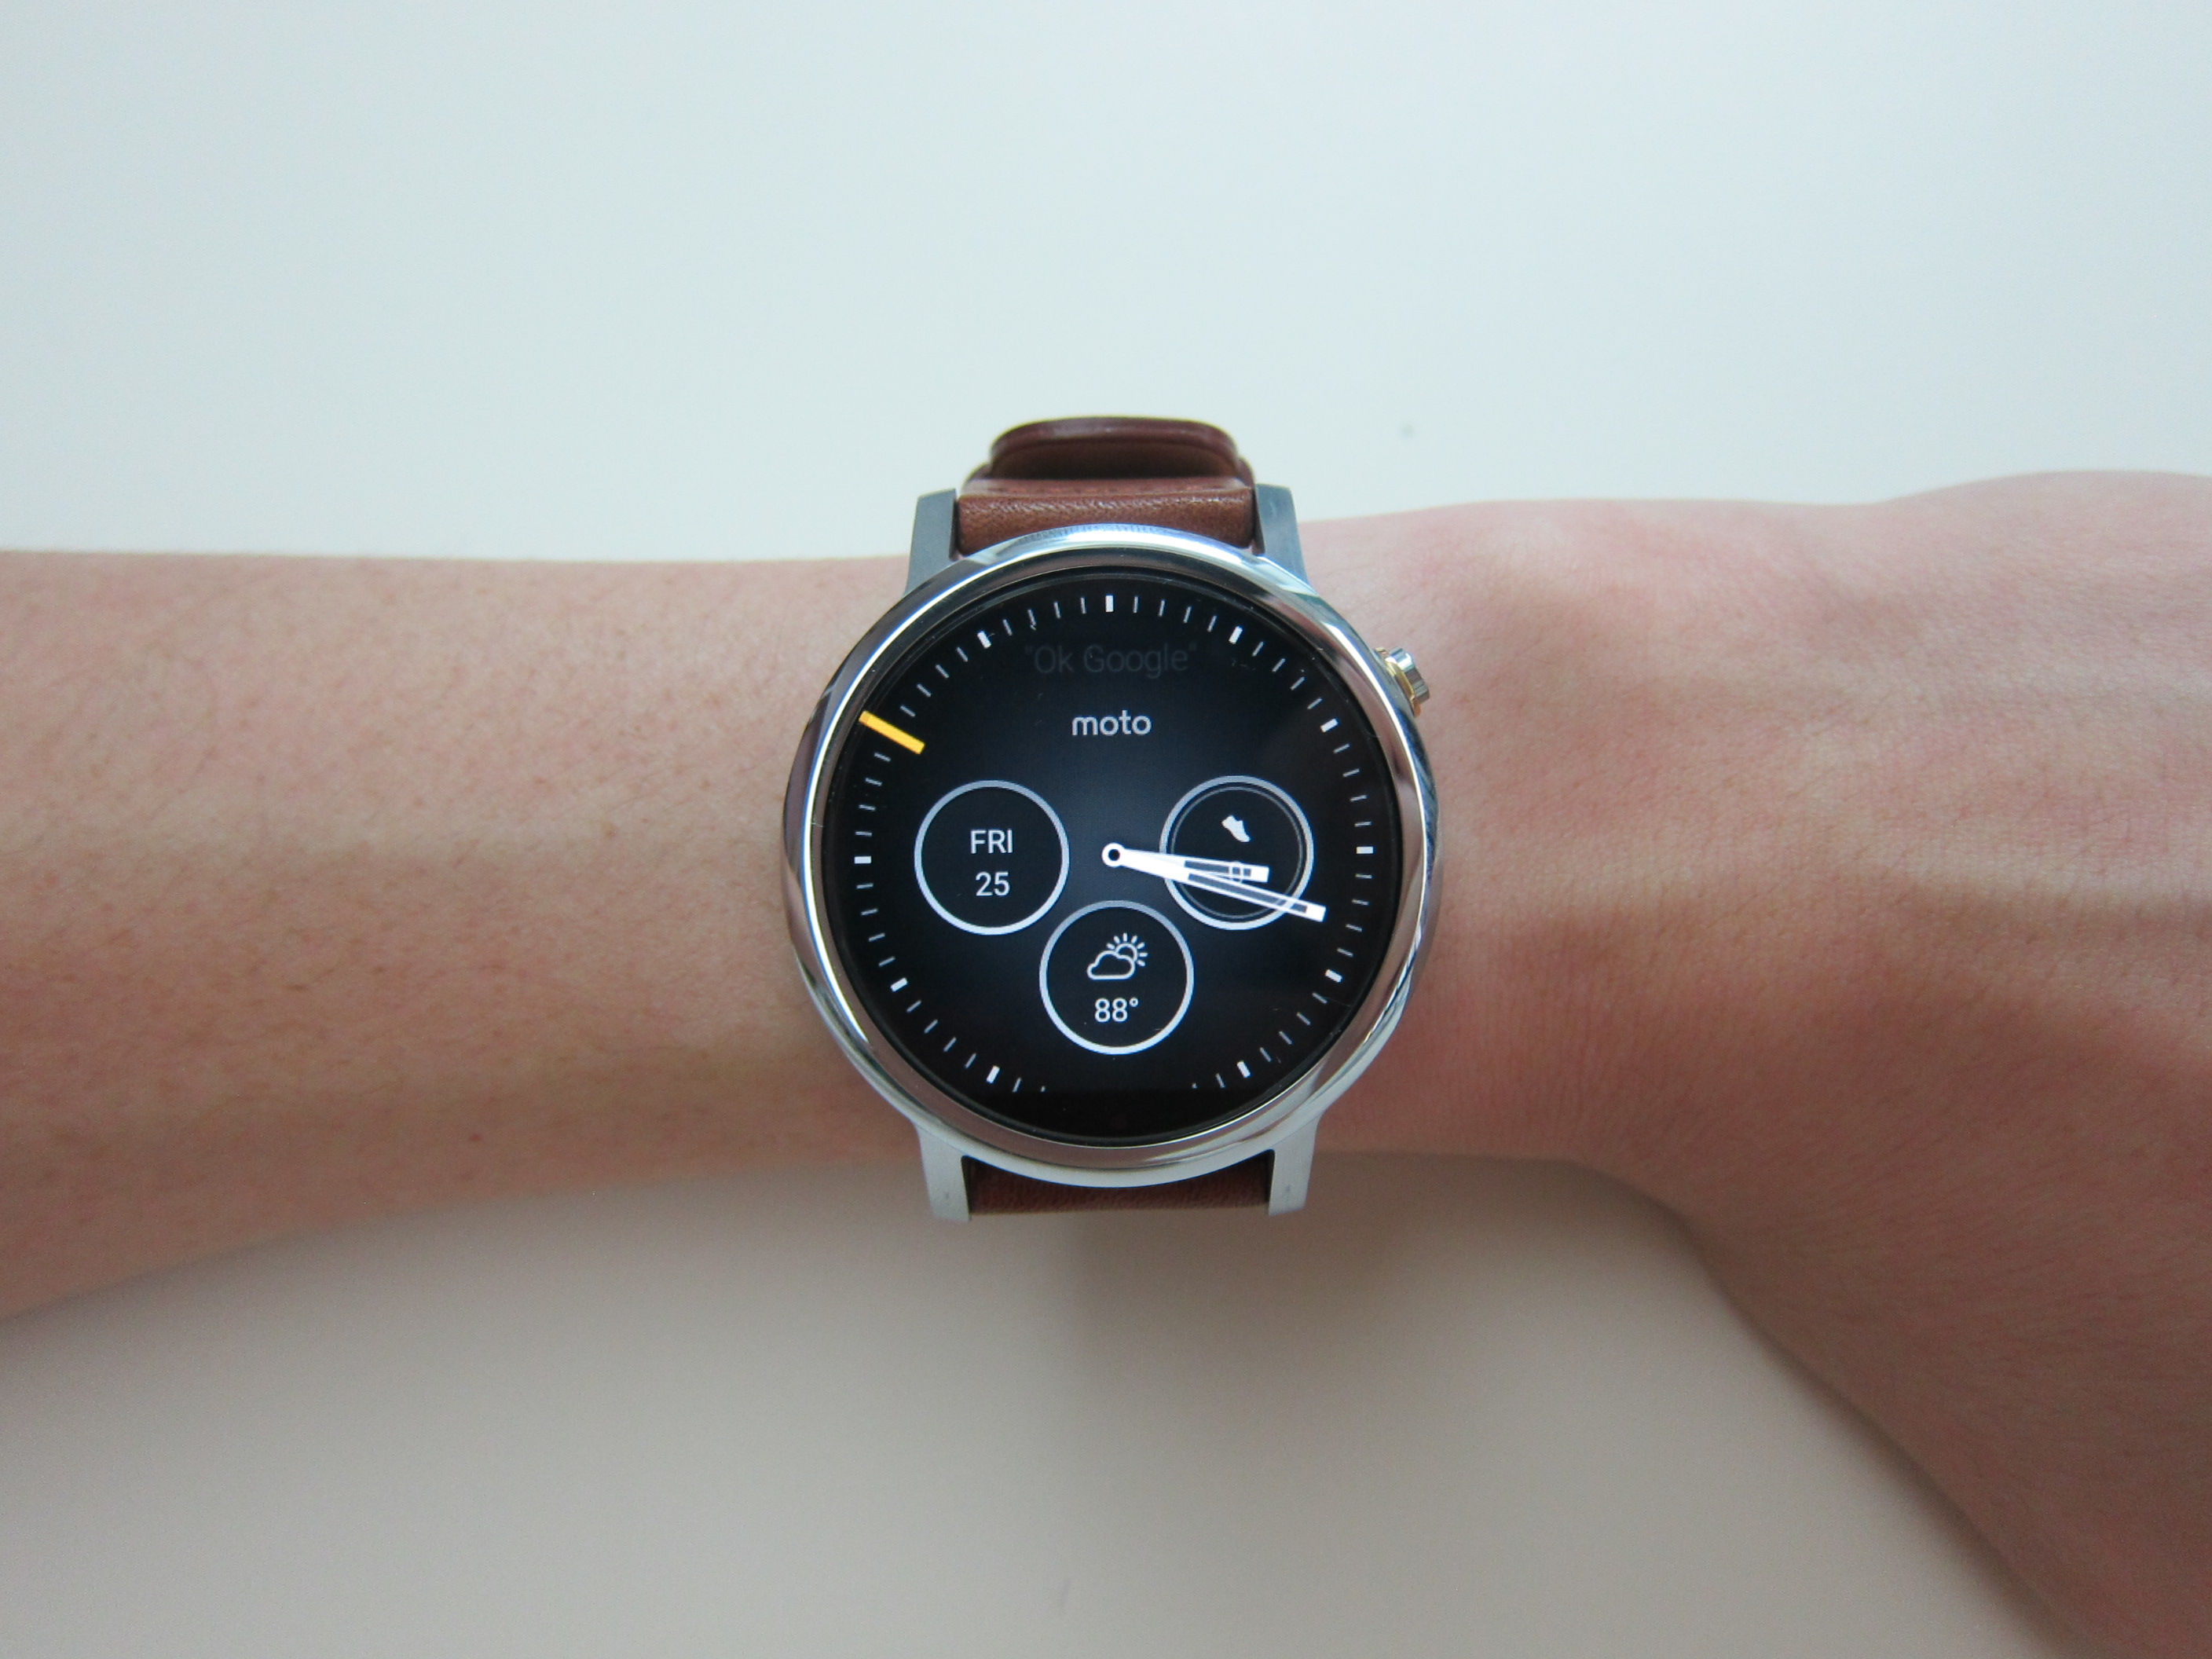 moto 2nd gen watch. Moto 360 (2nd Gen) - On Wrist 2nd Gen Watch